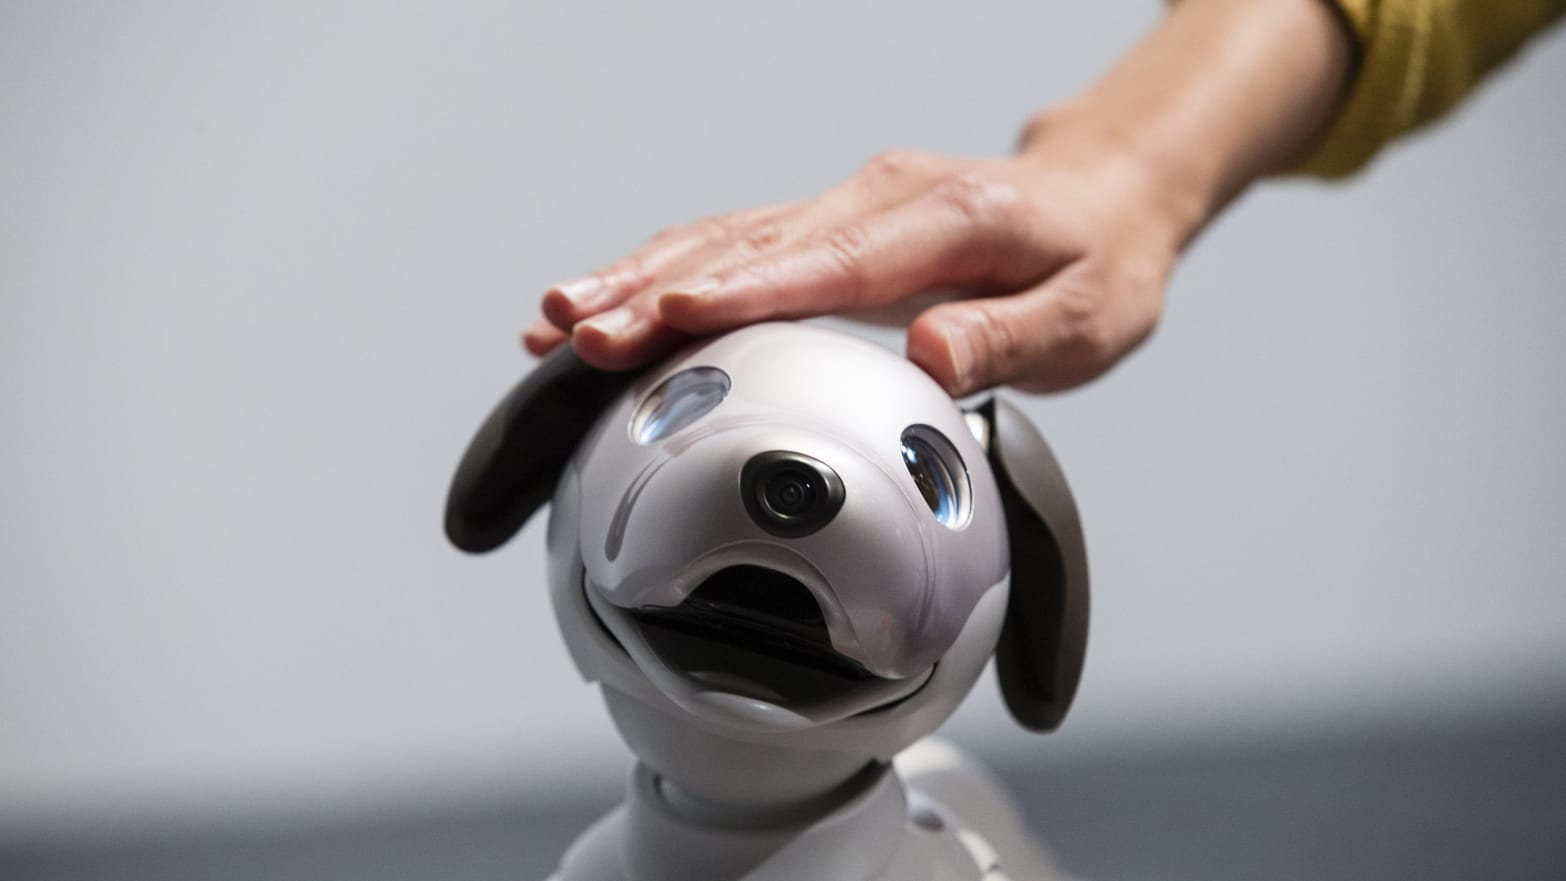 In The Future Well Love Our Robot Pets But Will They Love Us Back